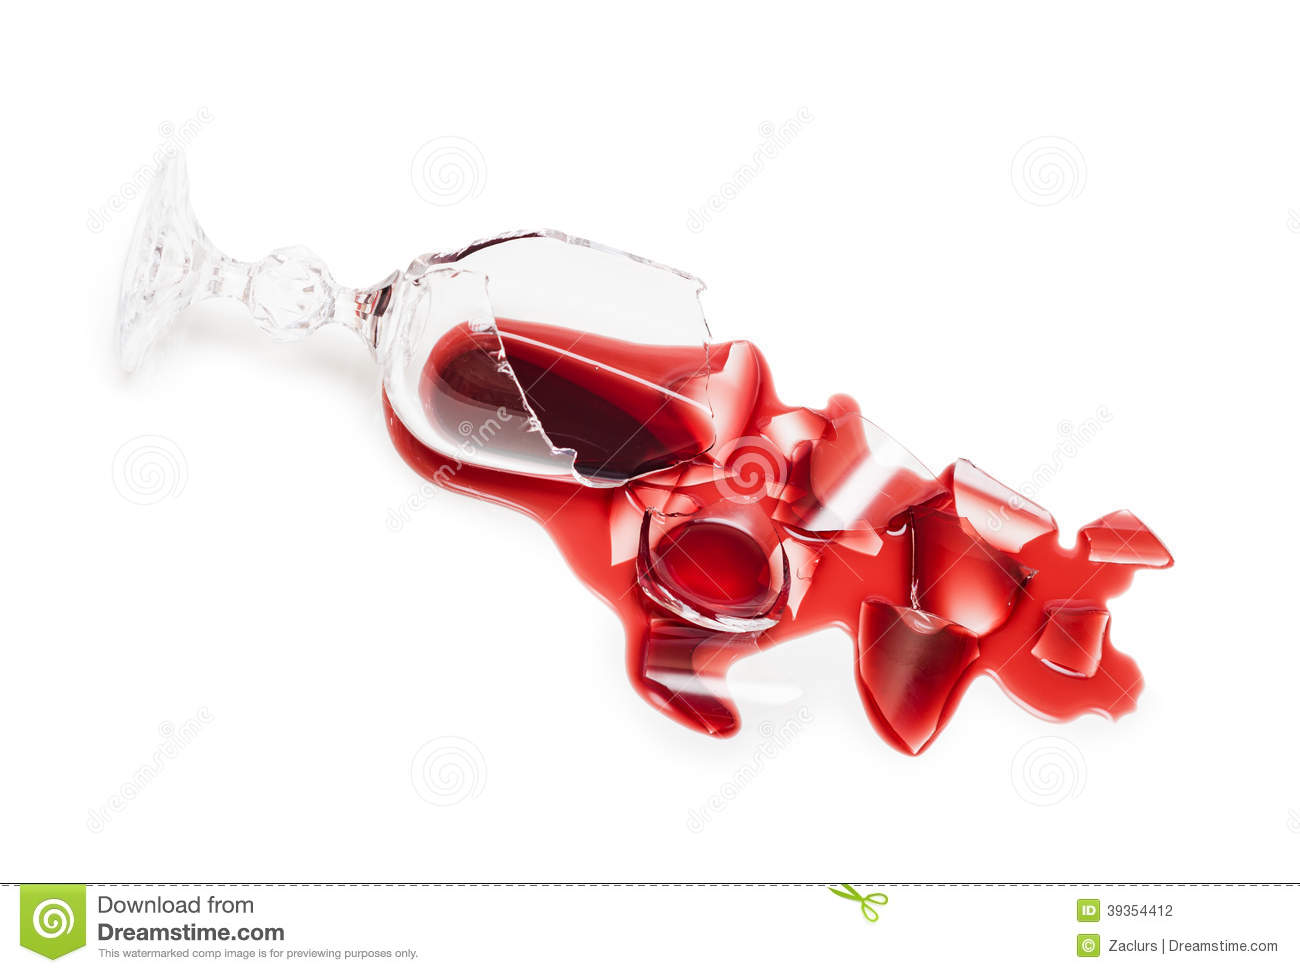 Broken glass of wine